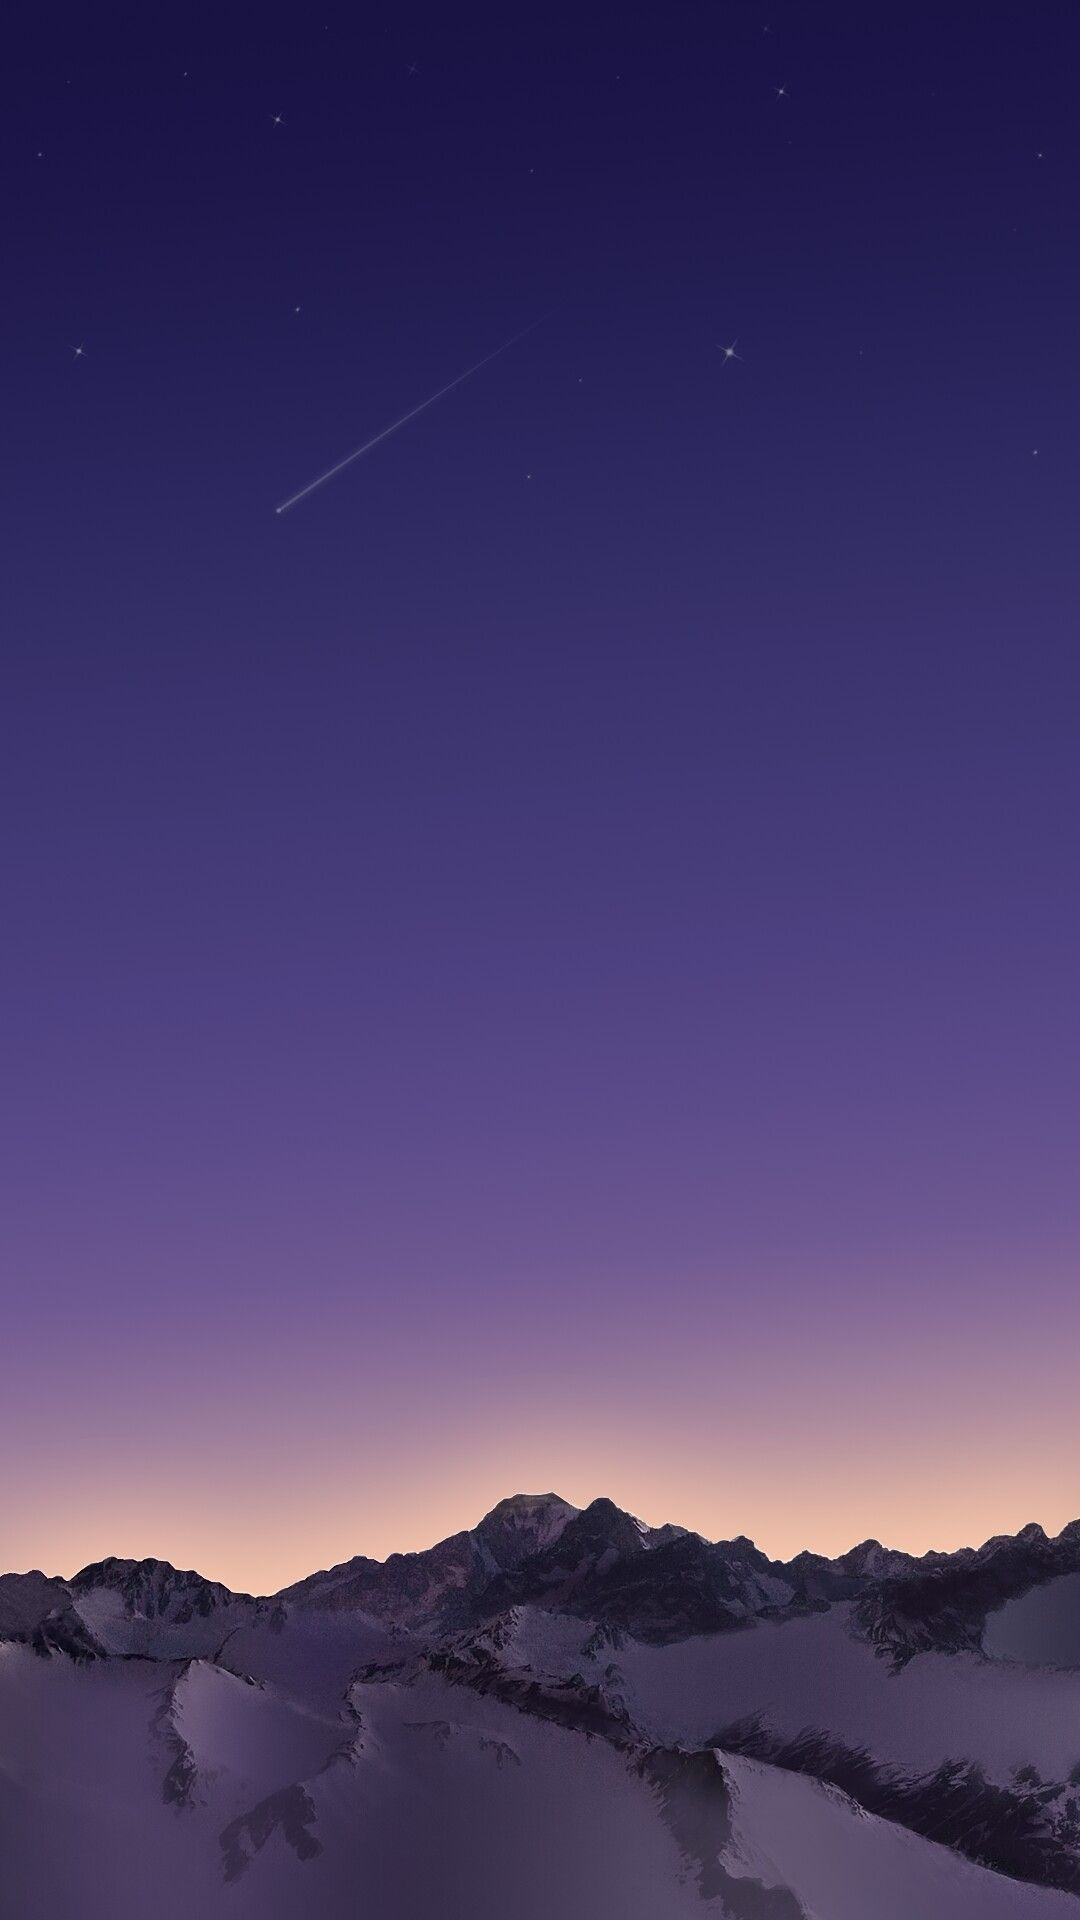 Snow Mountains Night Star Meteors Iphone Wallpaper In 2019